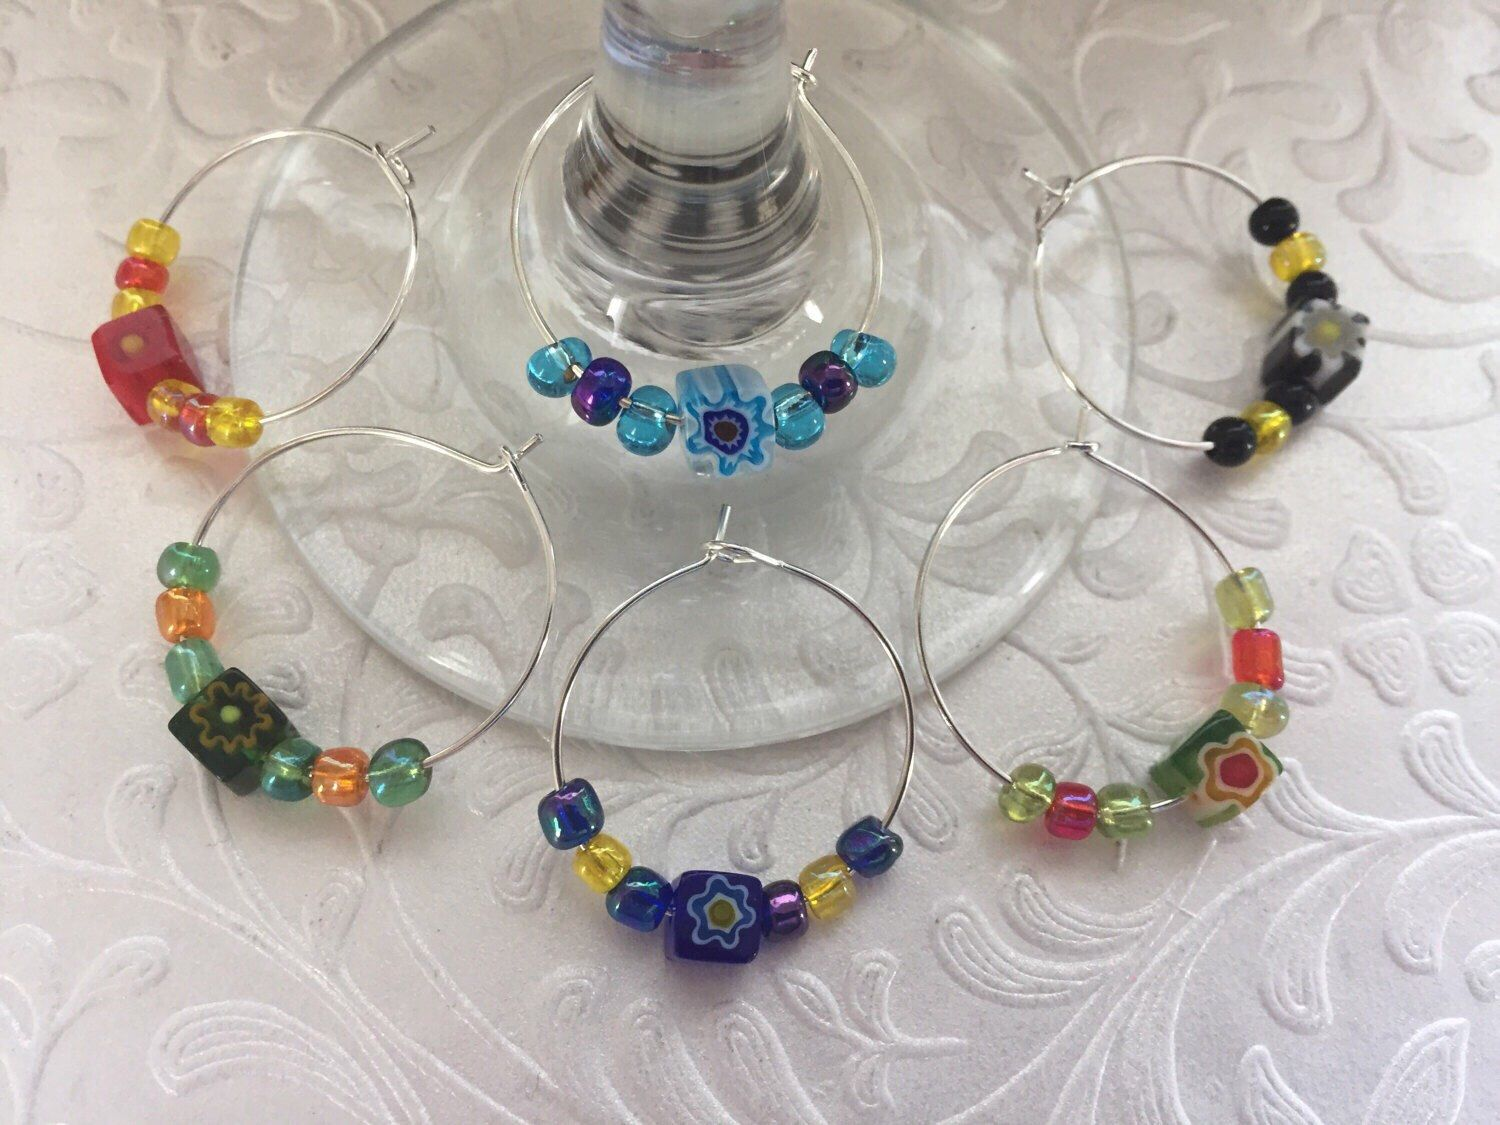 Set of 6 Beaded Wineglass Charms in an Organza Gift Bag